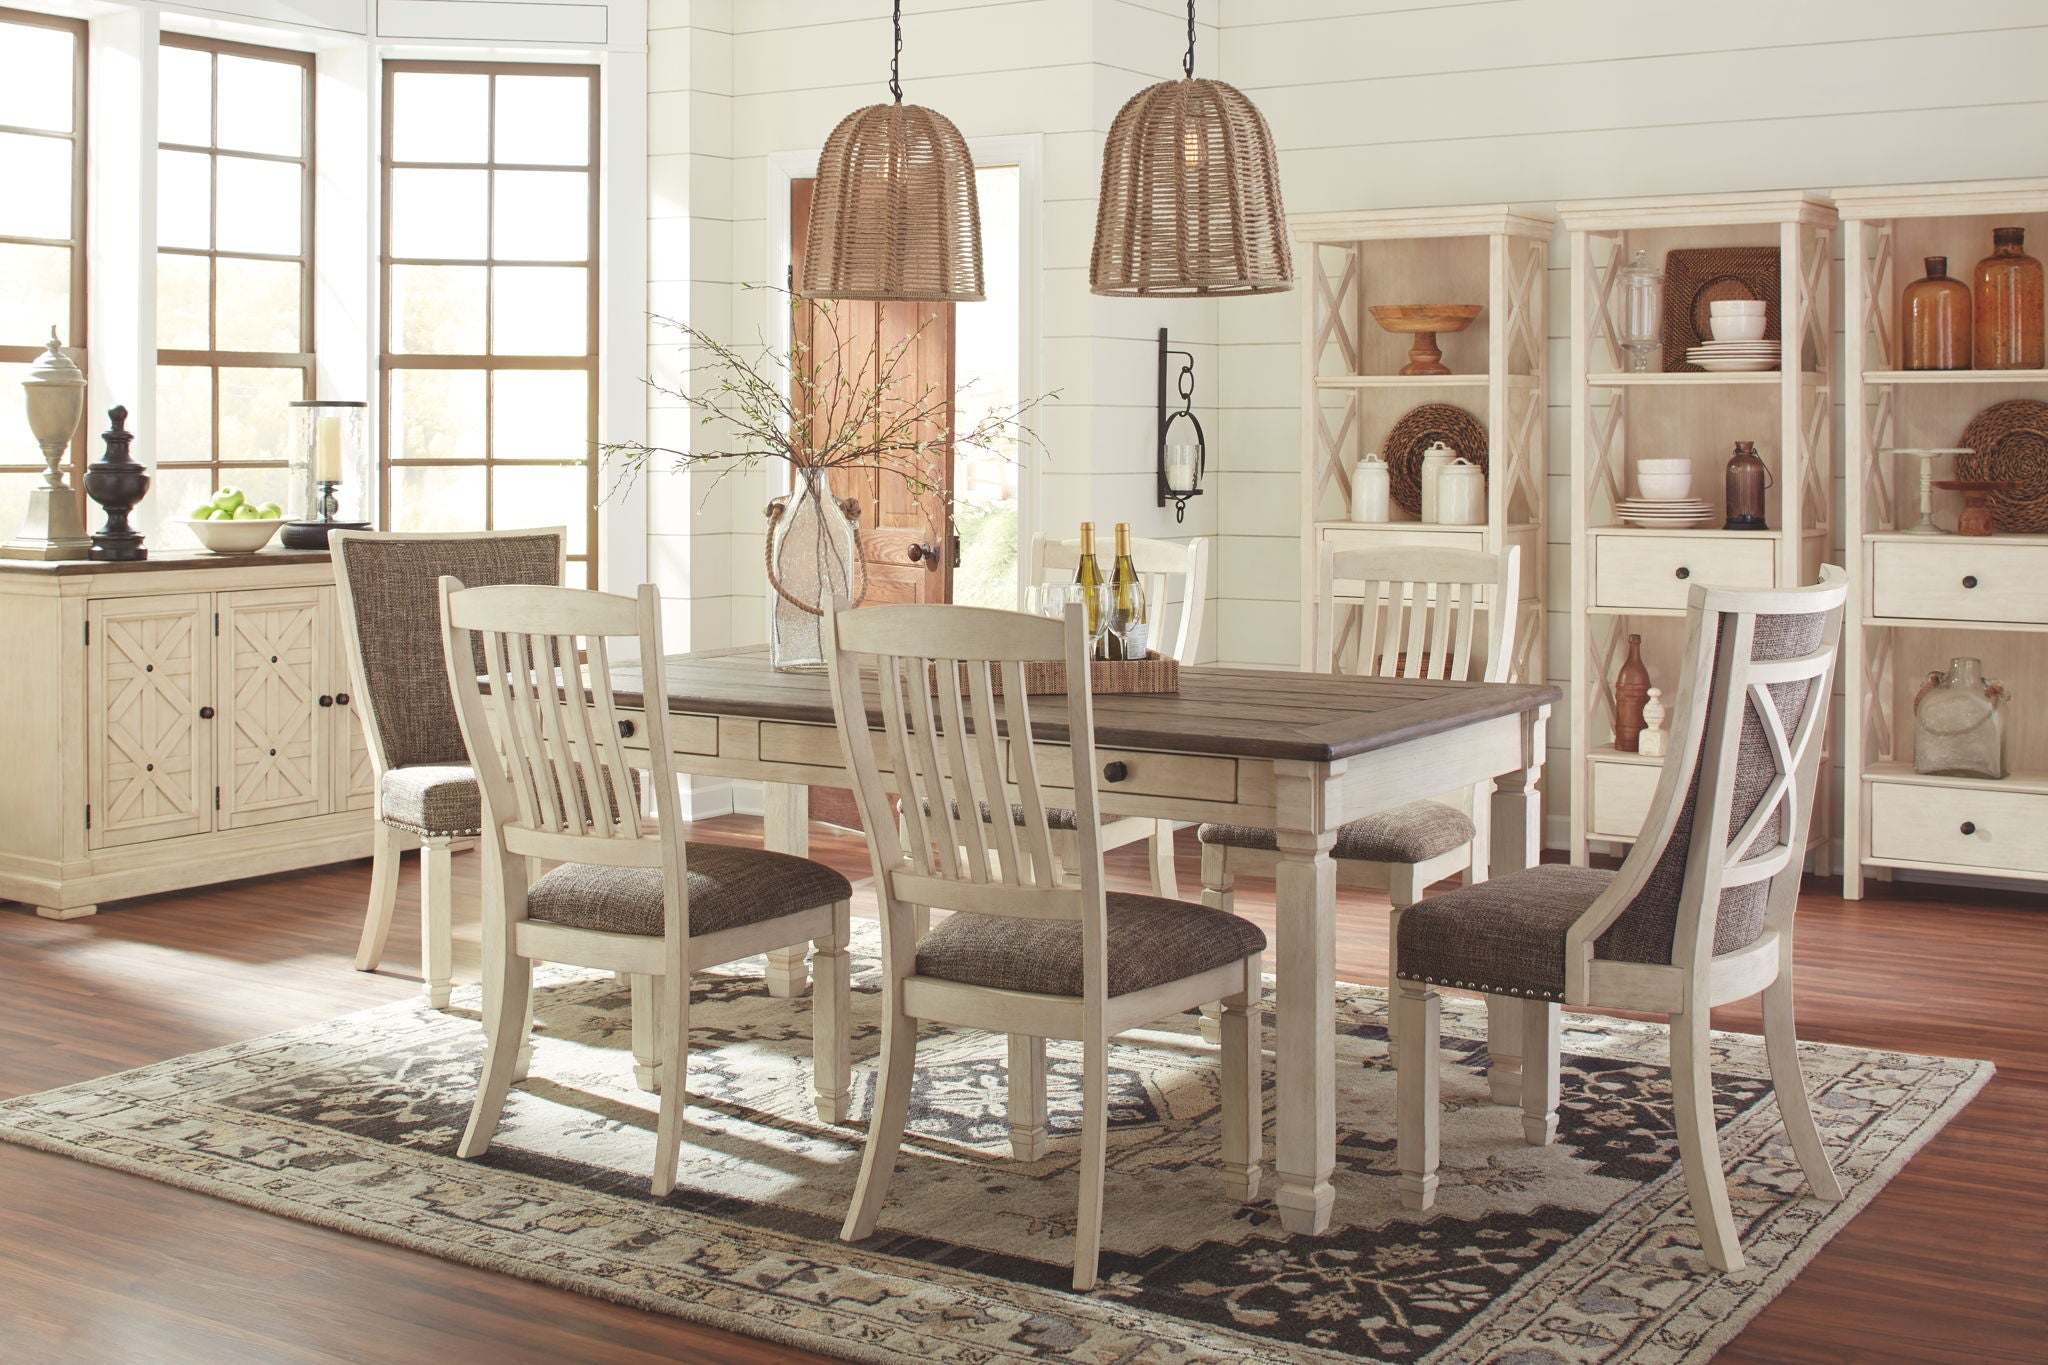 Bolanburg Dining Room Chair | Calgary's Furniture Store